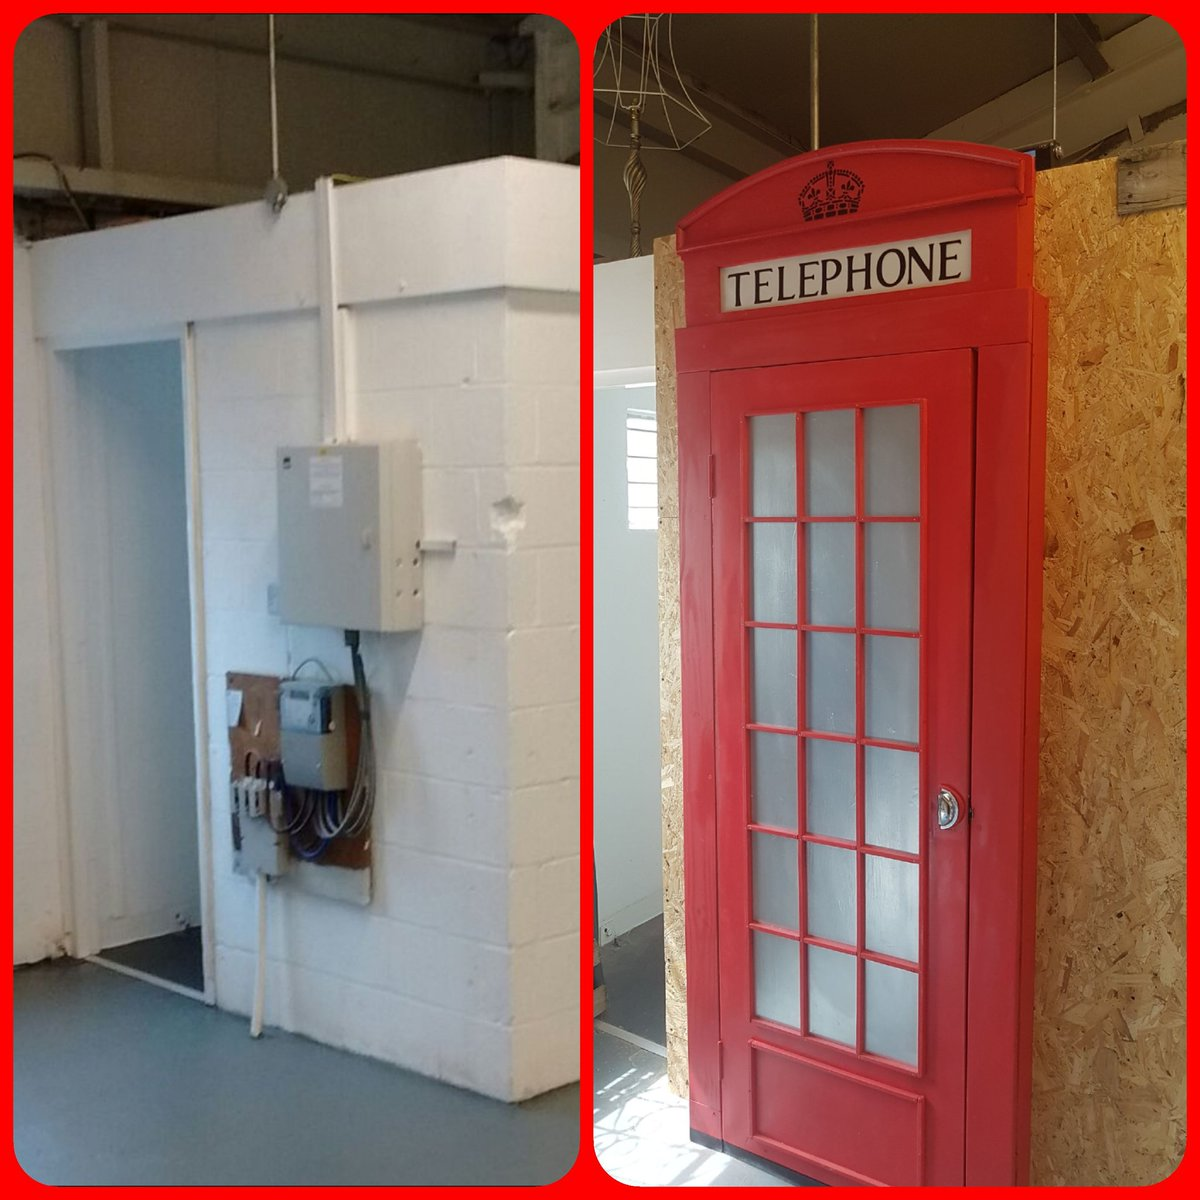 At Retro Chimps we always have a quirky solution to a problem  http:// retrochimps.com  &nbsp;   #sthelenshour #shoplocal <br>http://pic.twitter.com/9gN7nK1Xex